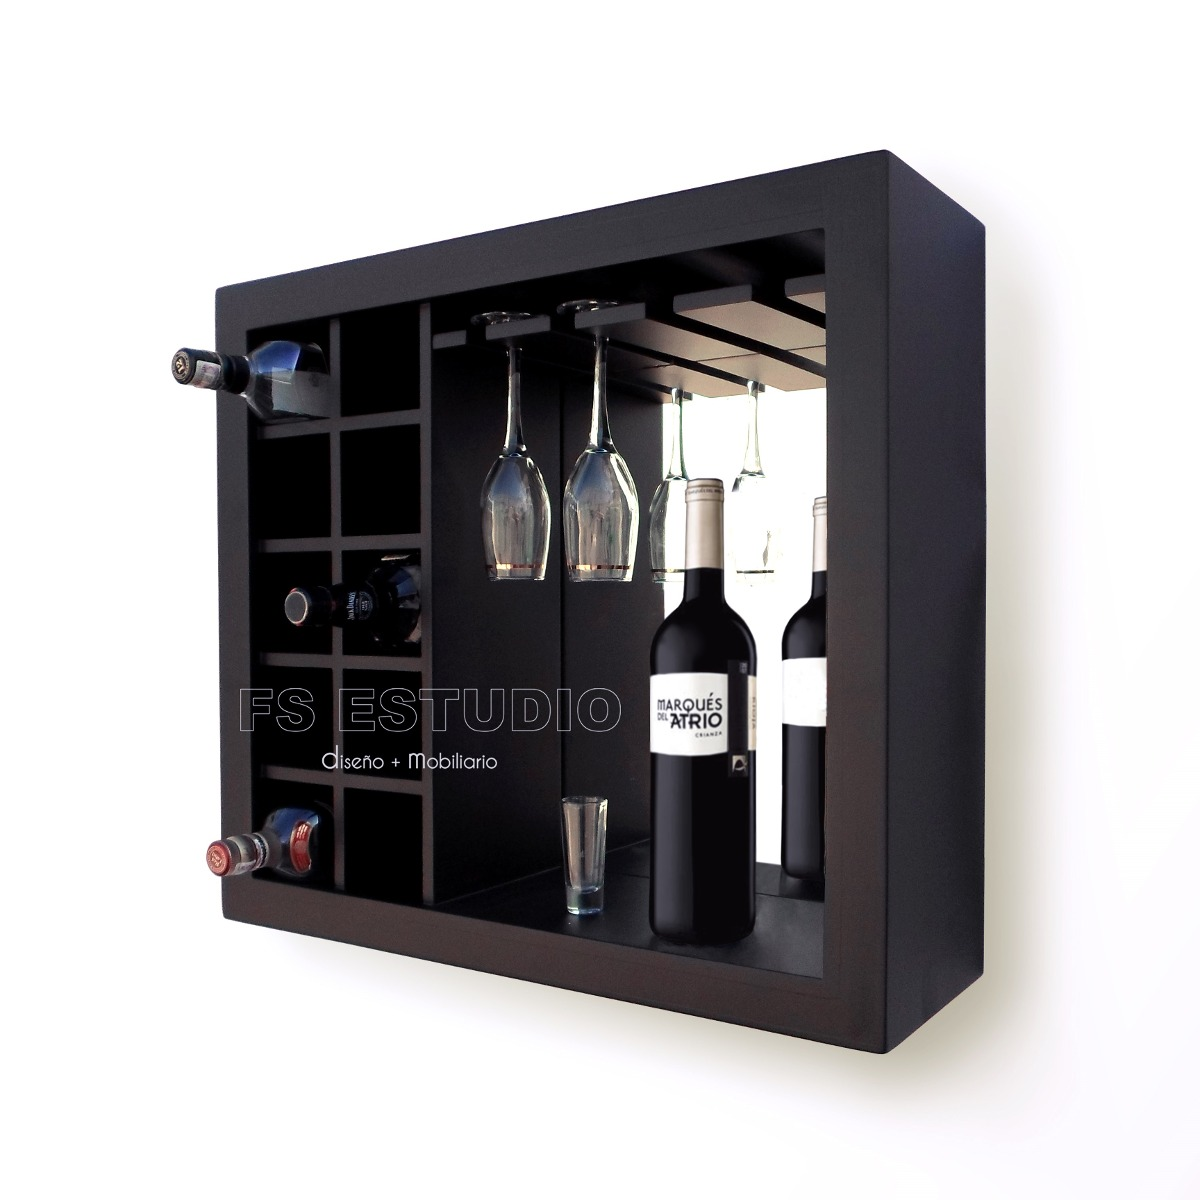 Cava cantina mueble contemporane para vinos copas de for Bar en madera para sala